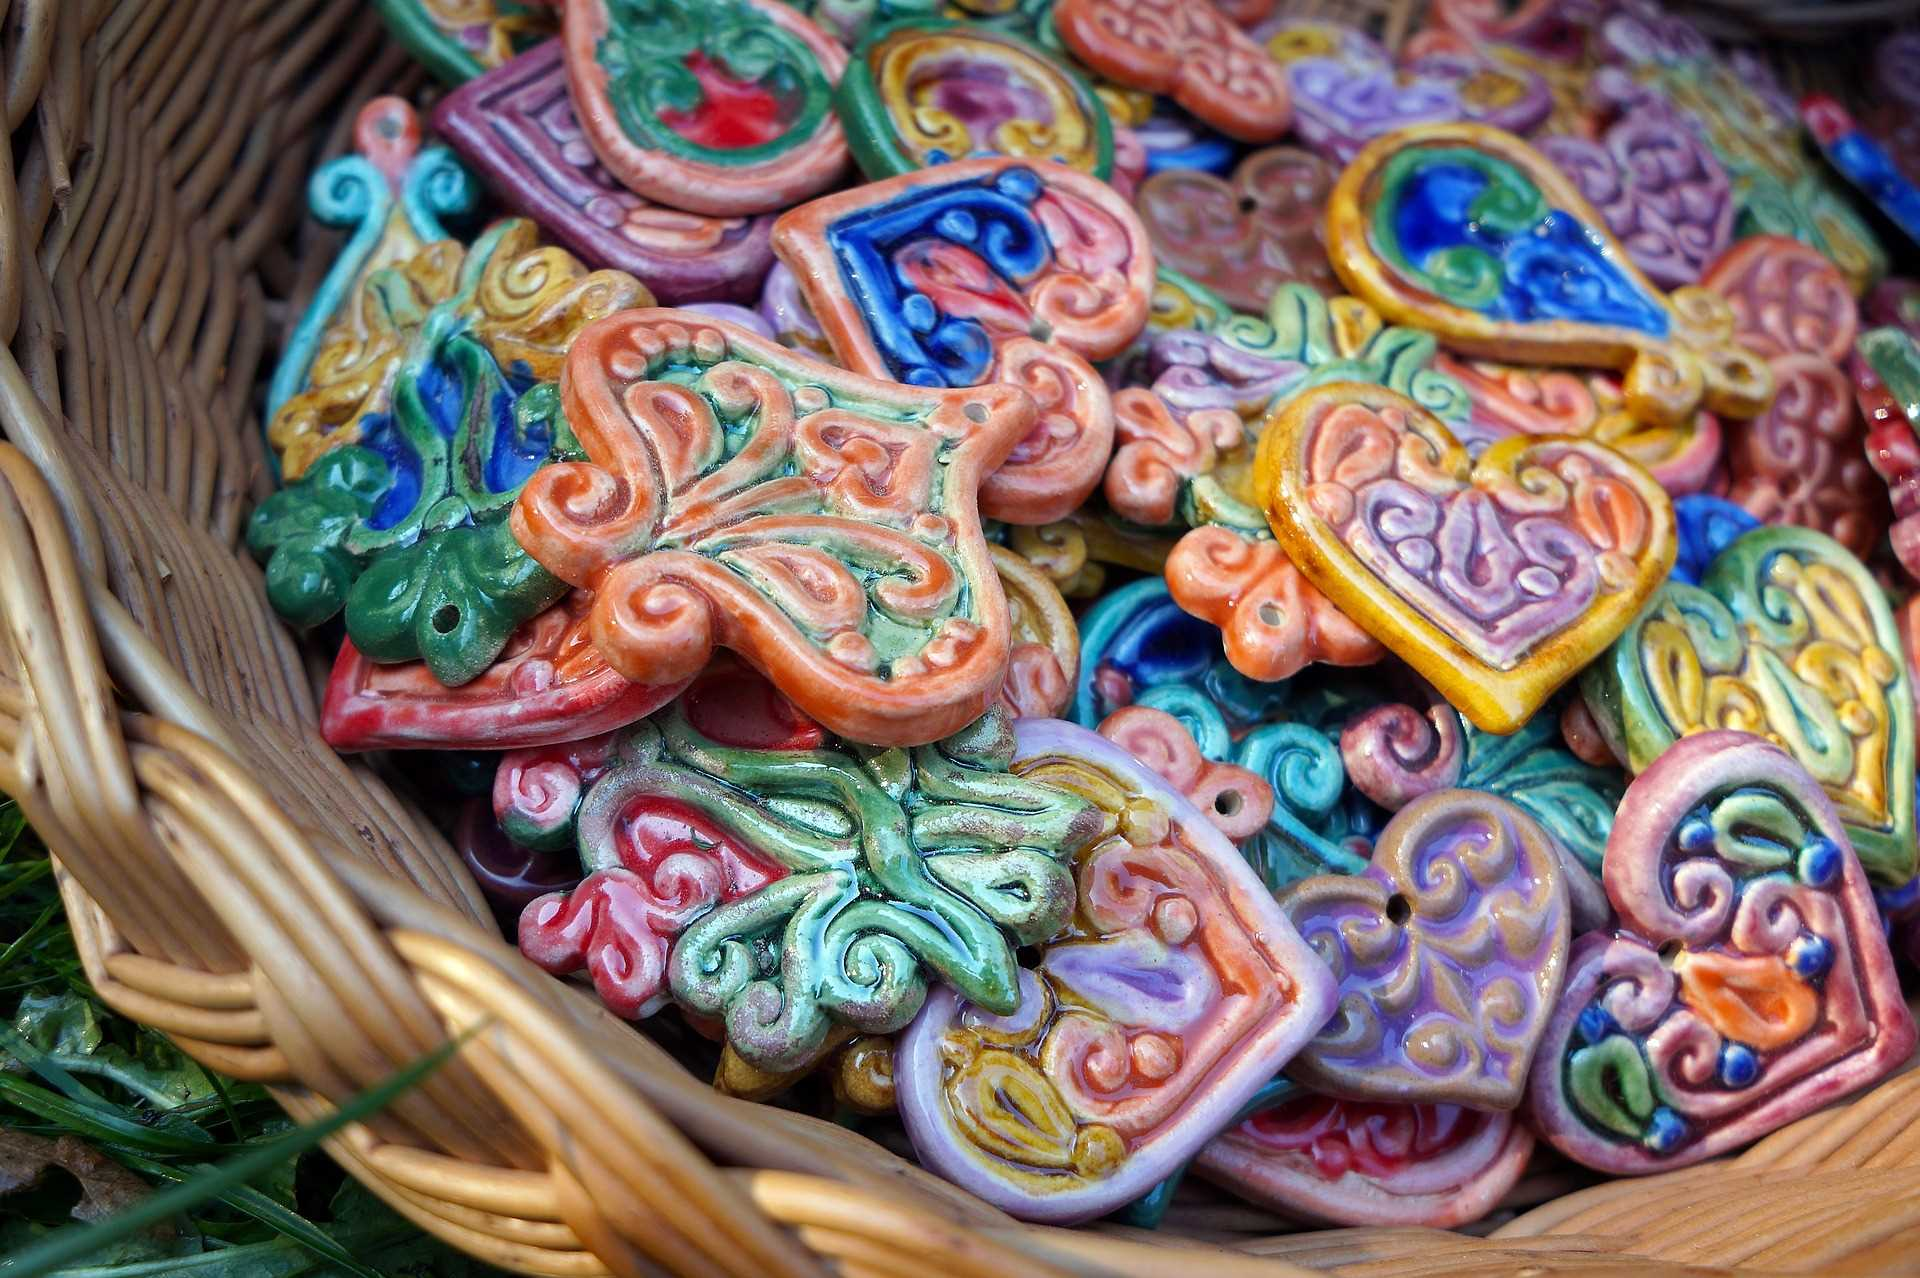 colorful ceramics and other items you can find at the Plattsburgh Craft Fairs